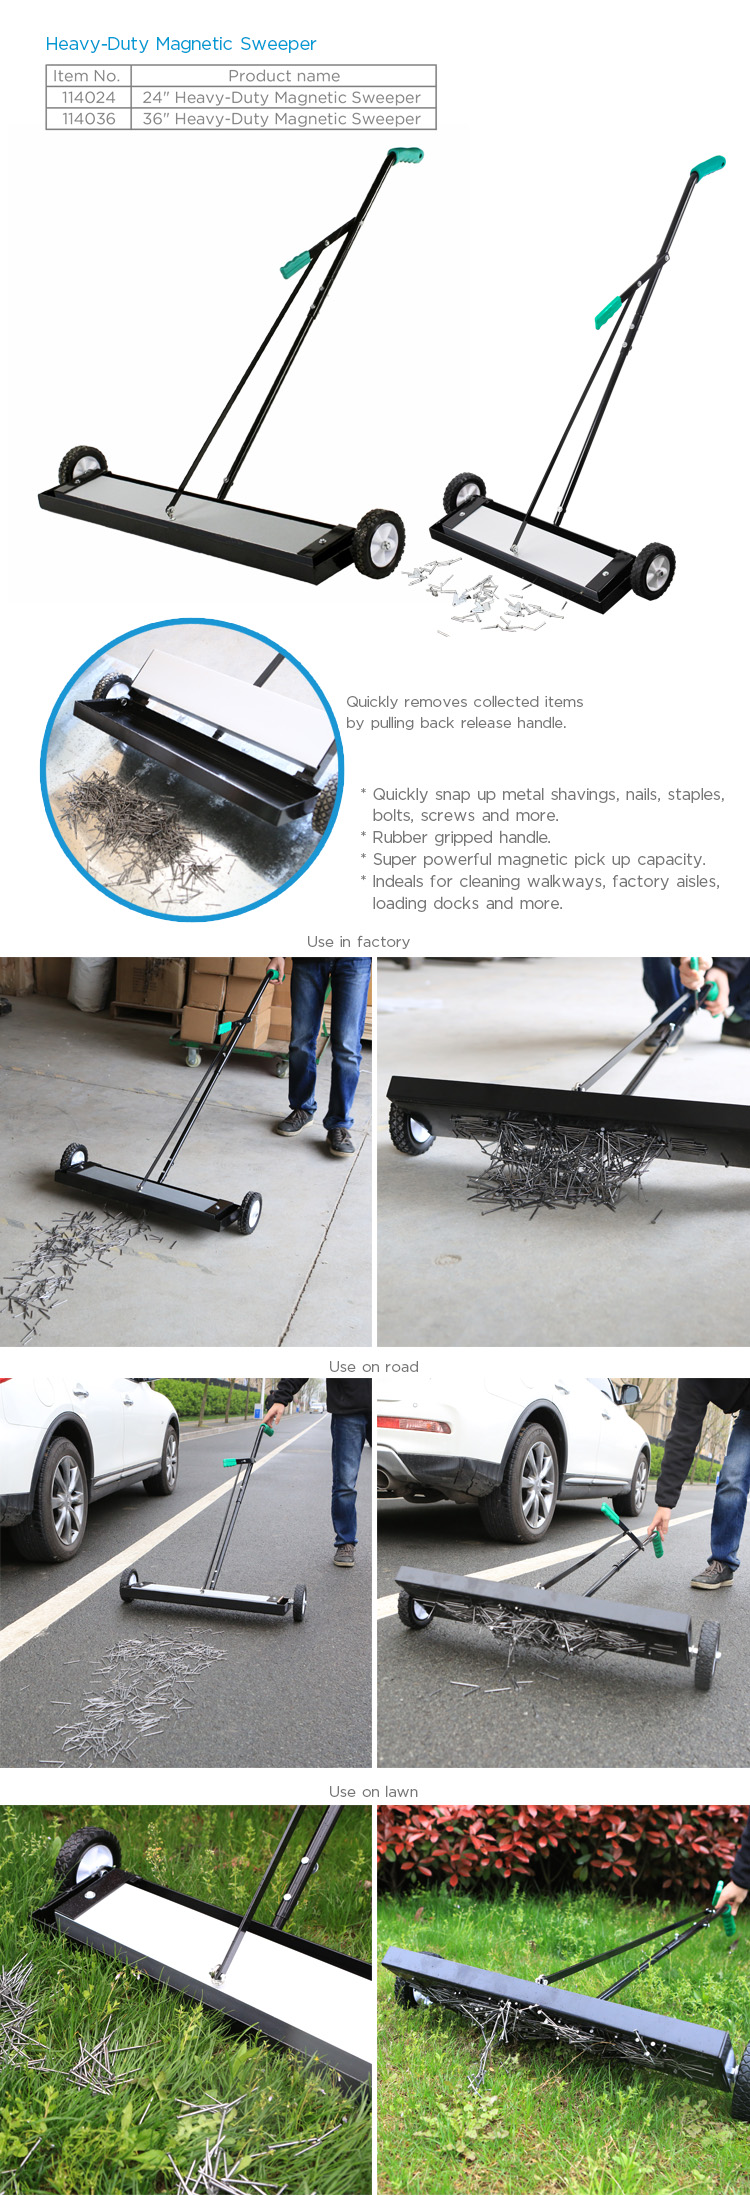 High Effective  Permanent Magnetic Sweeper Heavy duty sweeper with release